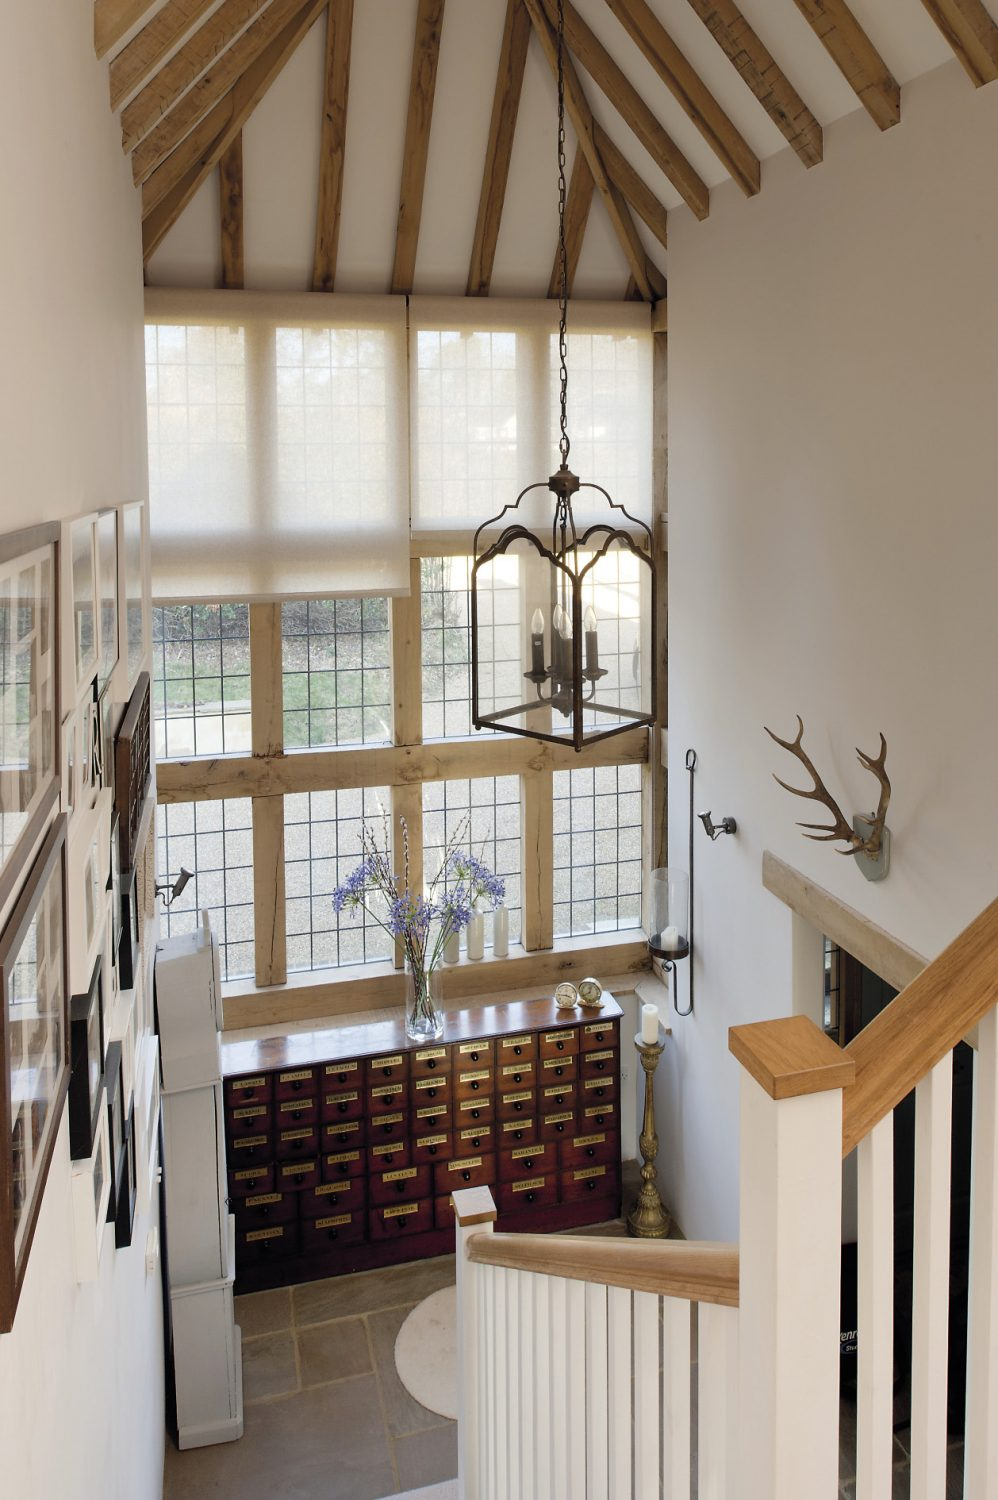 As you enter the house, light floods in from the superb two-storey oak-framed window. A pitched, oak-beamed ceiling soars above the staircase, from which hangs a magnificent lantern. Beneath the window is a huge mahogany former pharmacy cabinet